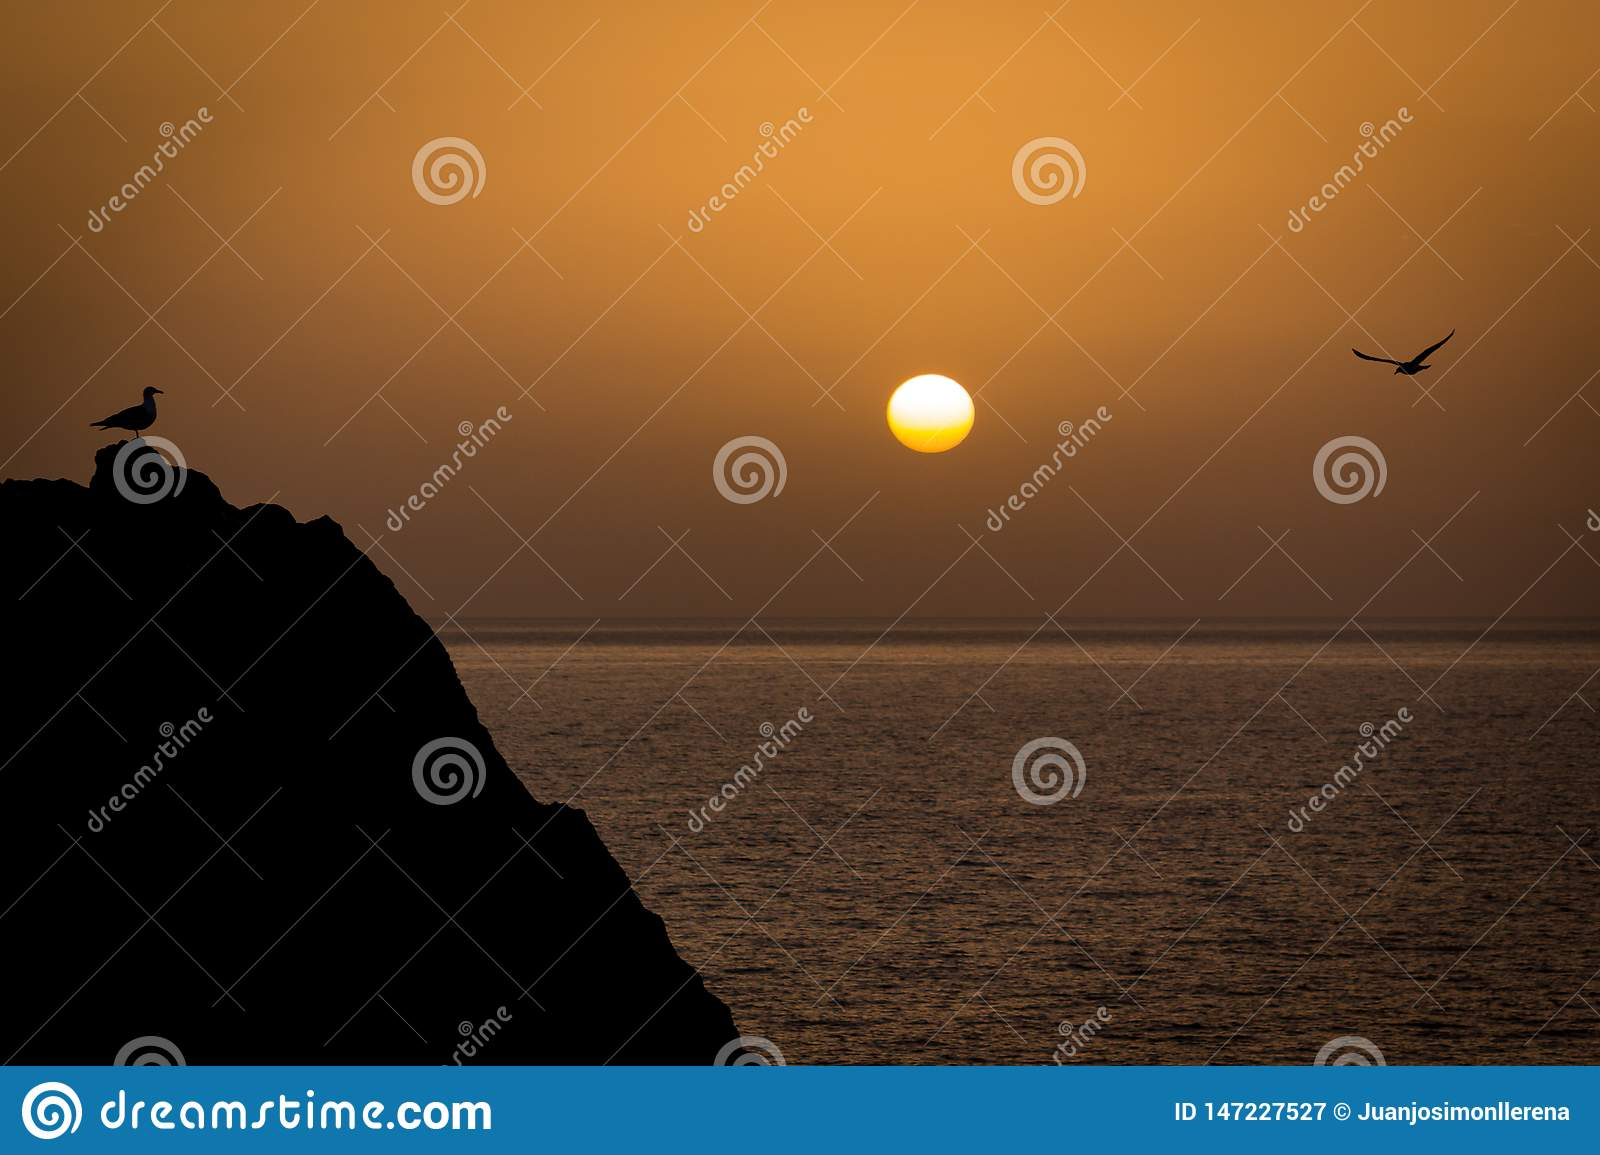 Two seagulls meeting in a rock in front of the sea while the sun is setting at the horizon. Peace, relax, chill